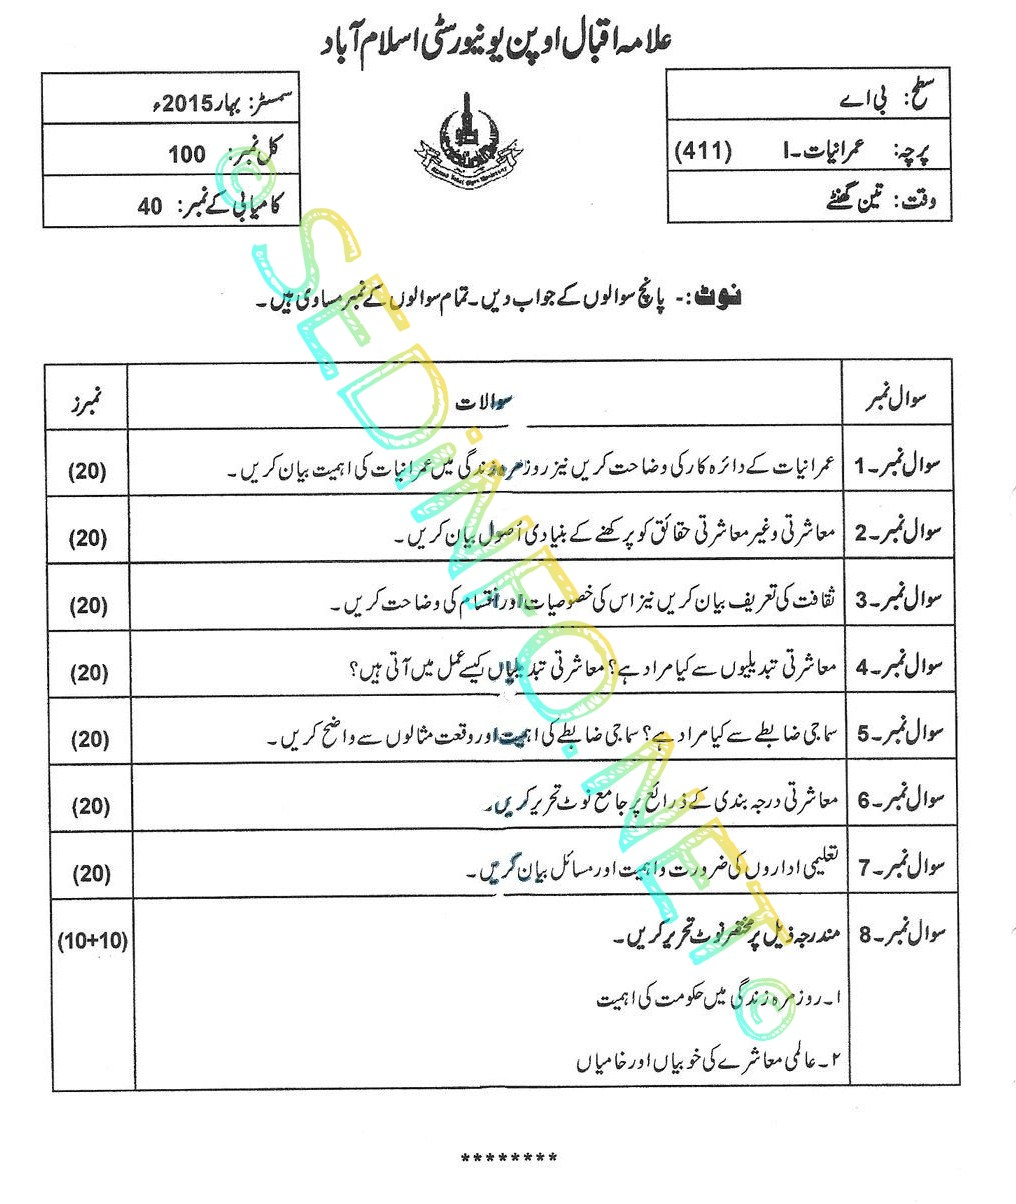 BA AIOU Code 411 Past Papers Spring 2015